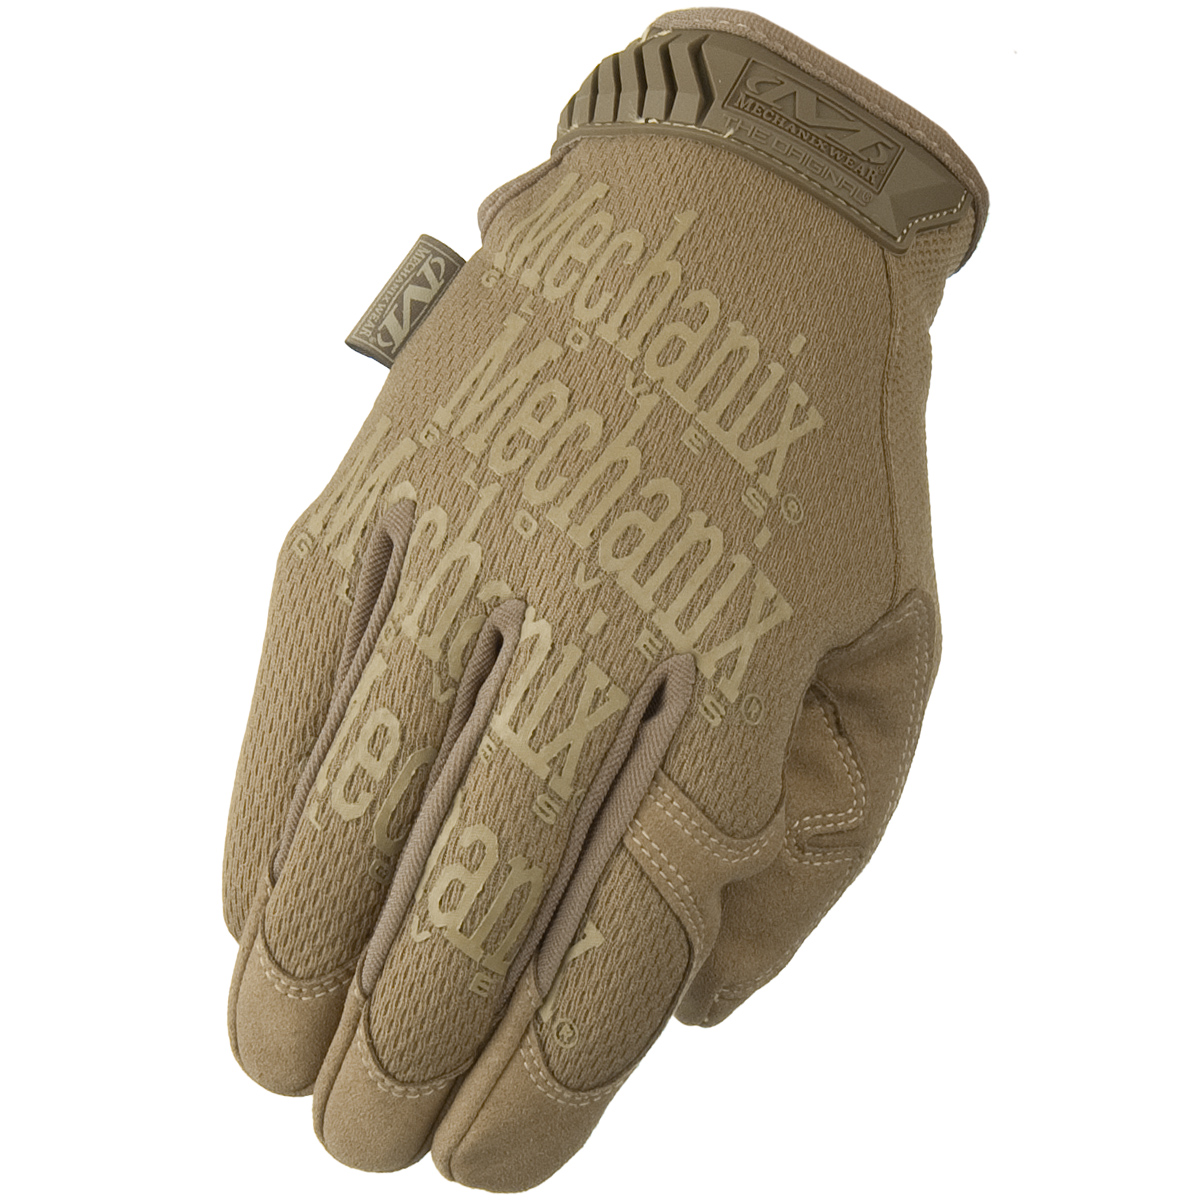 The Original glove revolutionized the hand protection industry with its versatile design and has faithfully served its users ever since. Durable microfiber extends the life of the glove and breathable TrekDry forms to the back of the hand, creating an exceptional fit with superior dexterity.